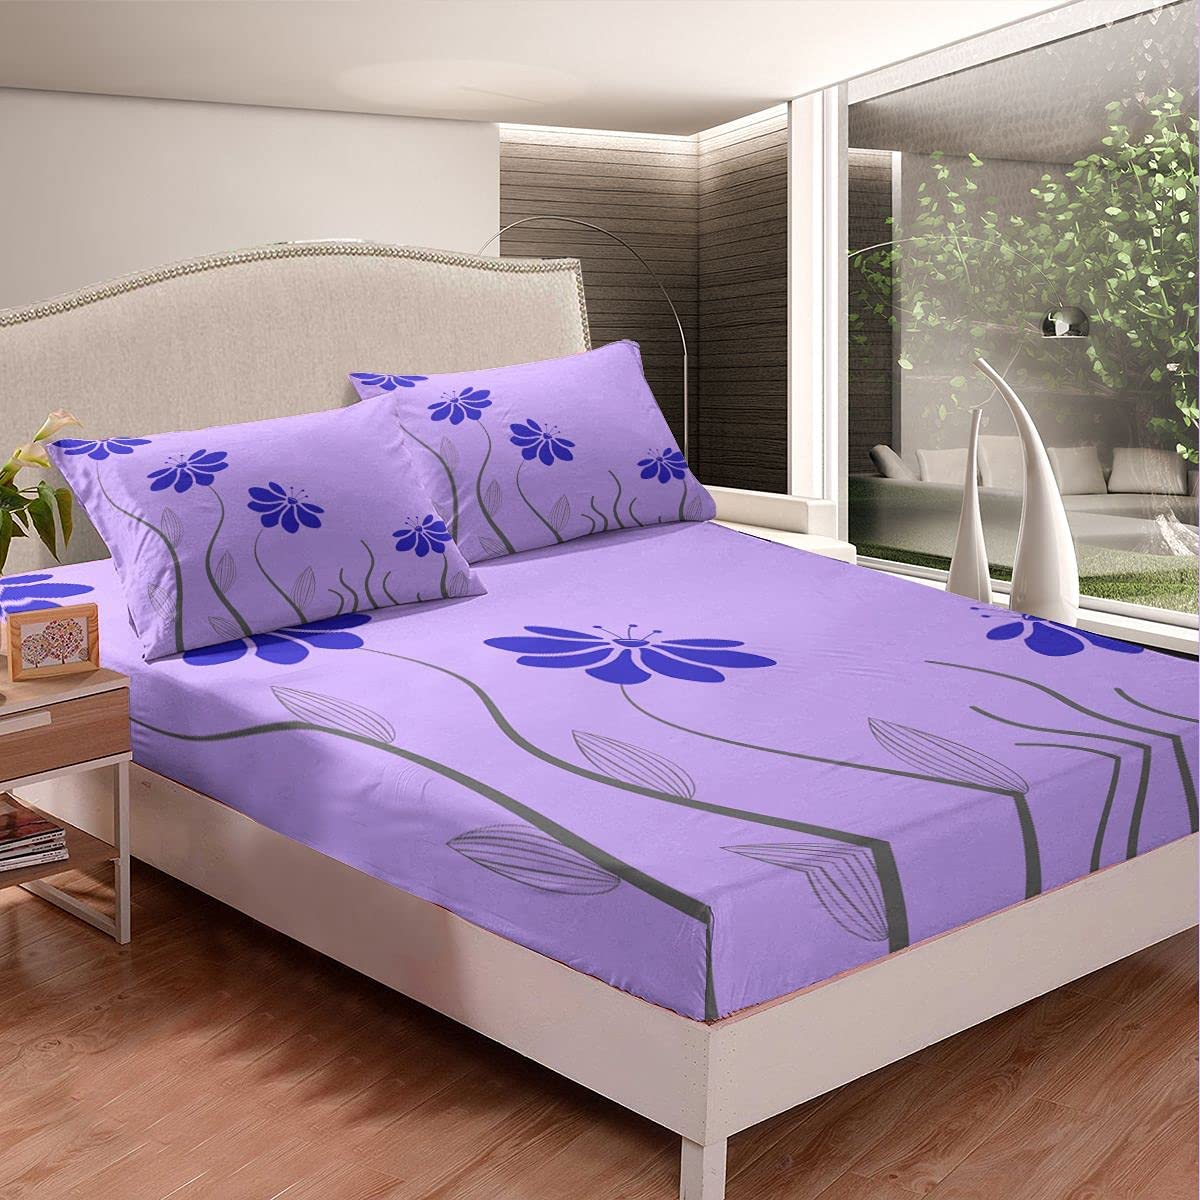 Max 47% OFF Daisy Floral Bed Sheet Popular standard Set Decor Striped Leav with Petals